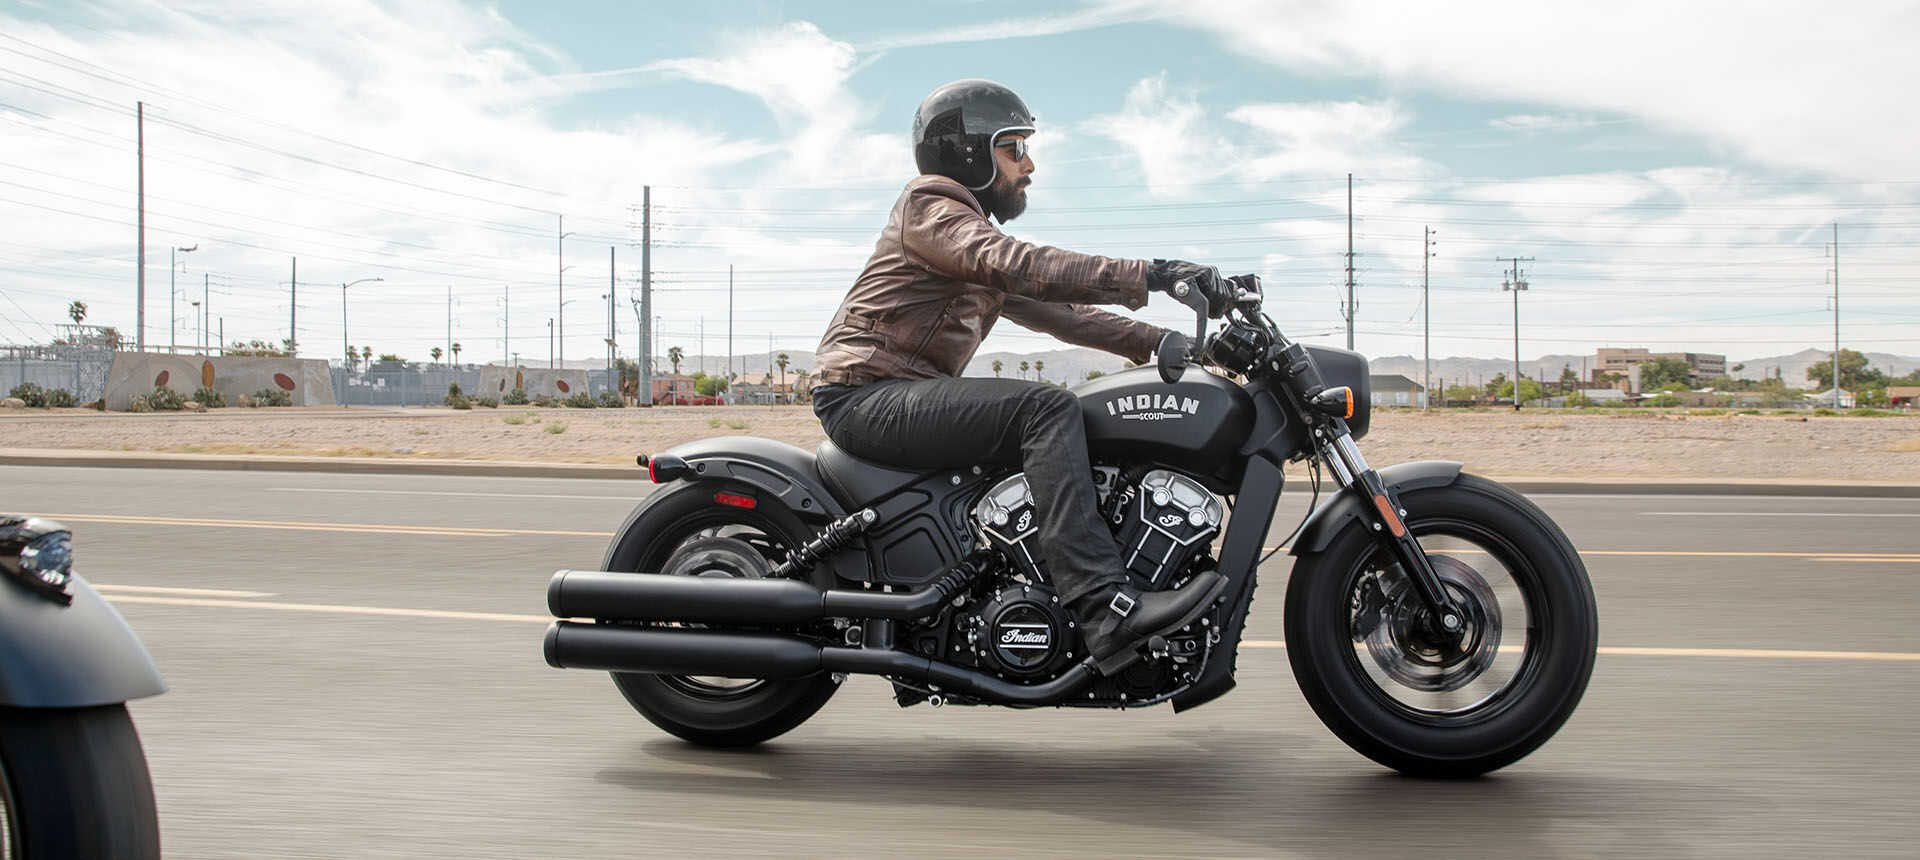 2020 SCOUT BOBBER